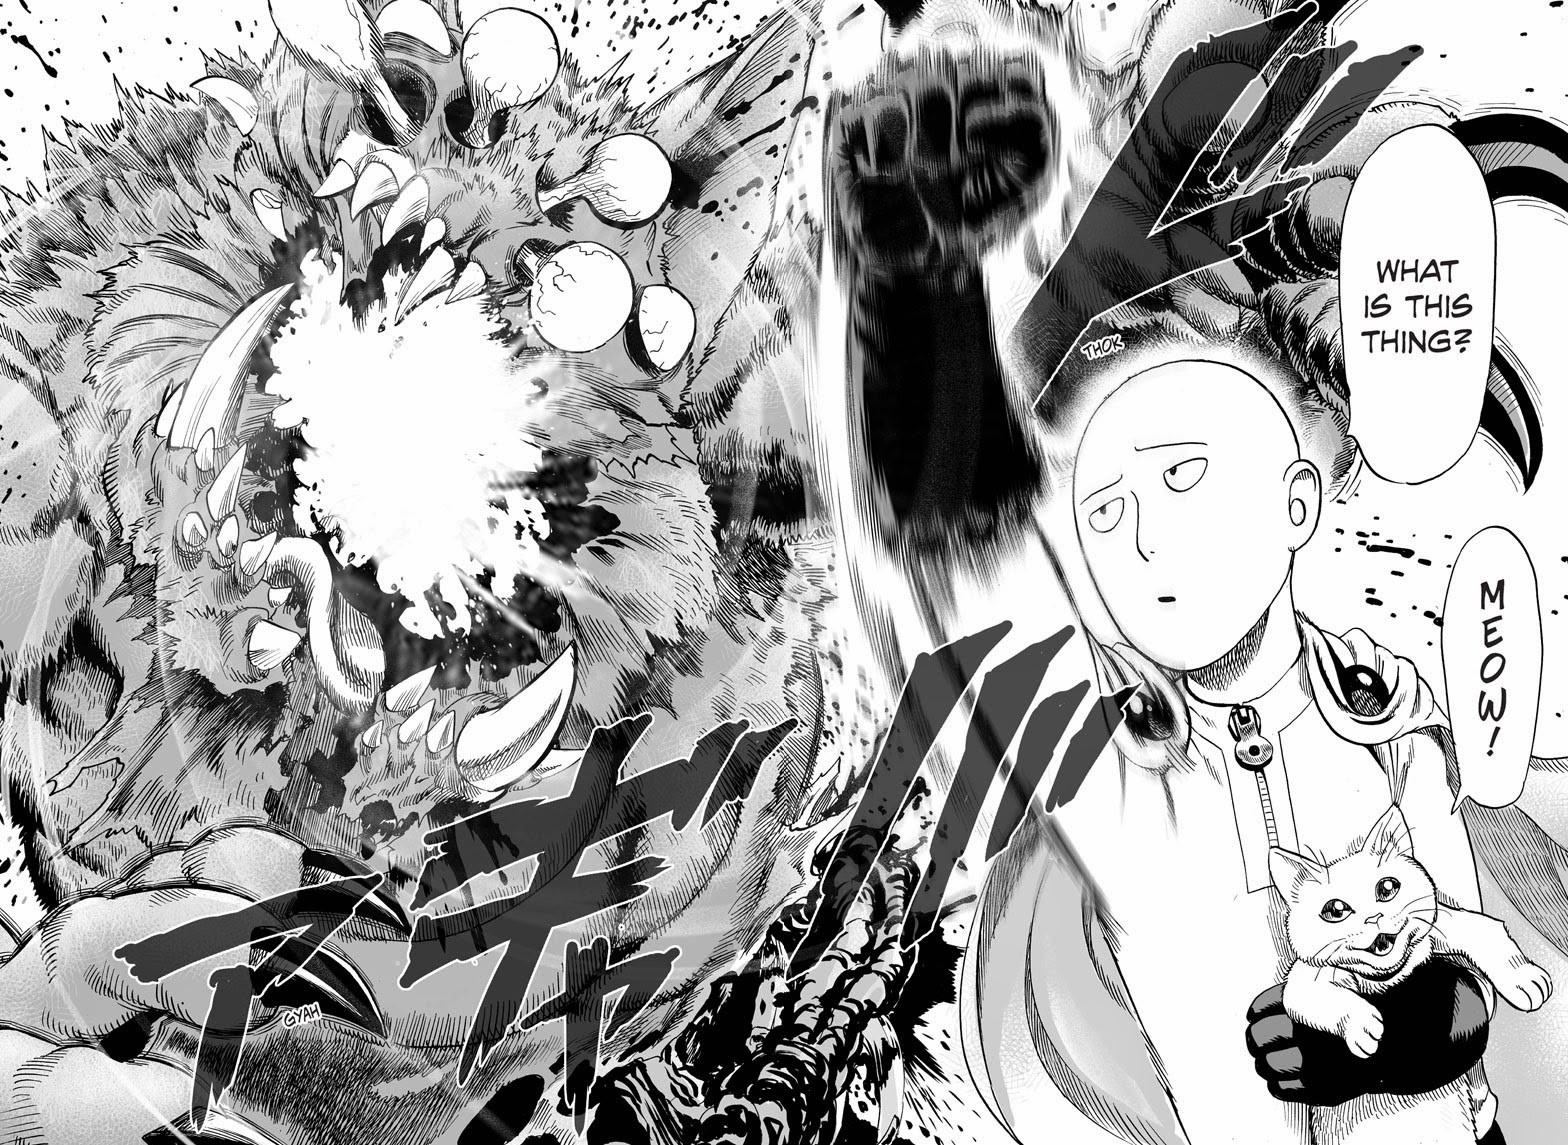 one-punch-man-in-a-single-image.jpg